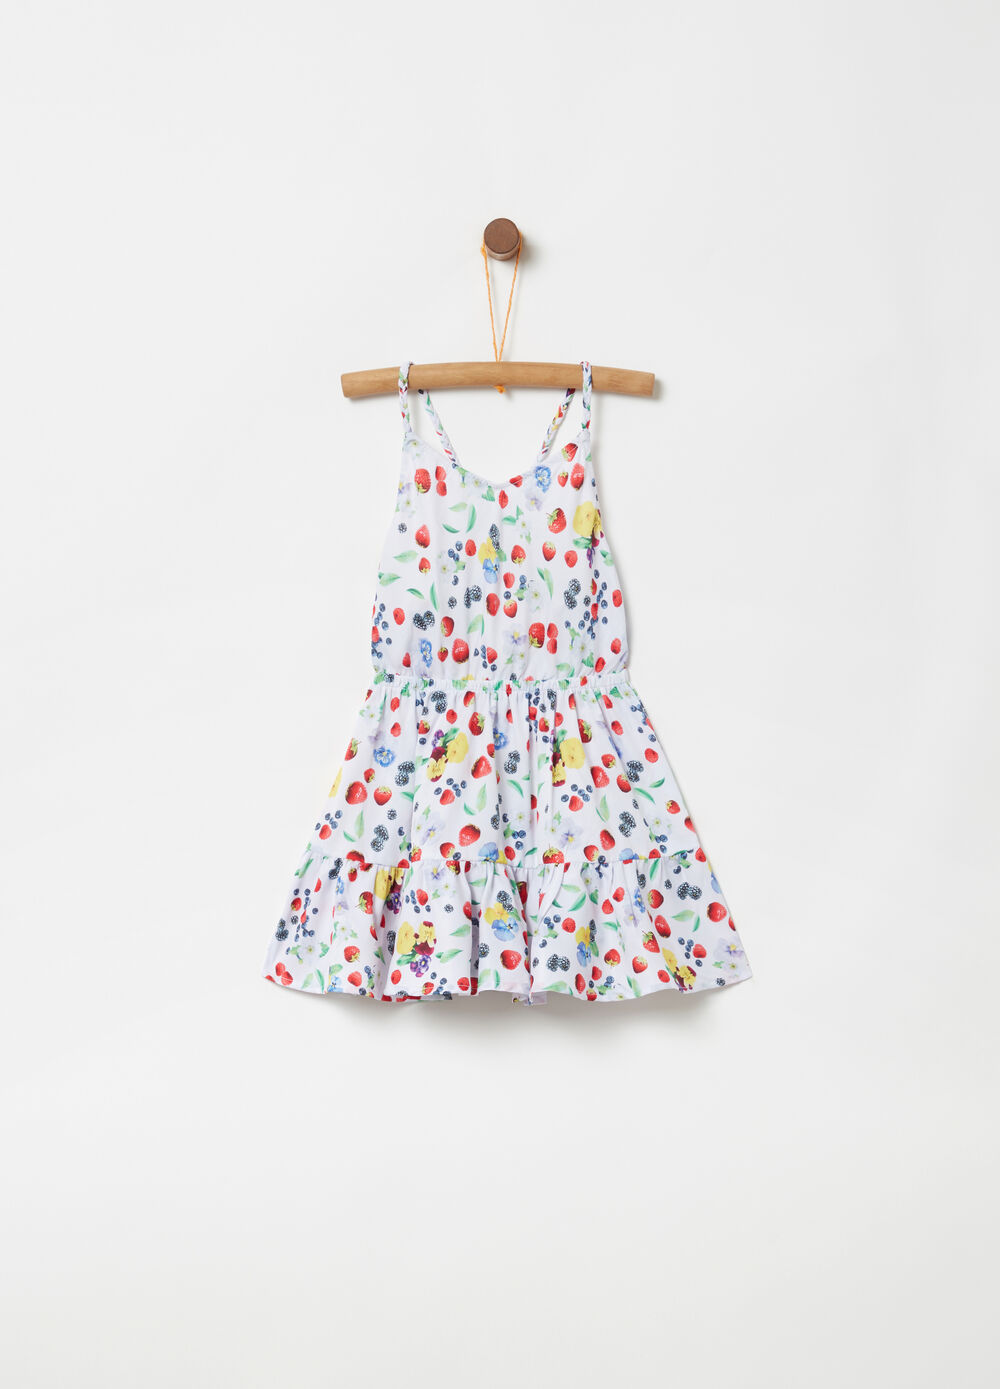 Dress with crossover spaghetti straps and fruit print